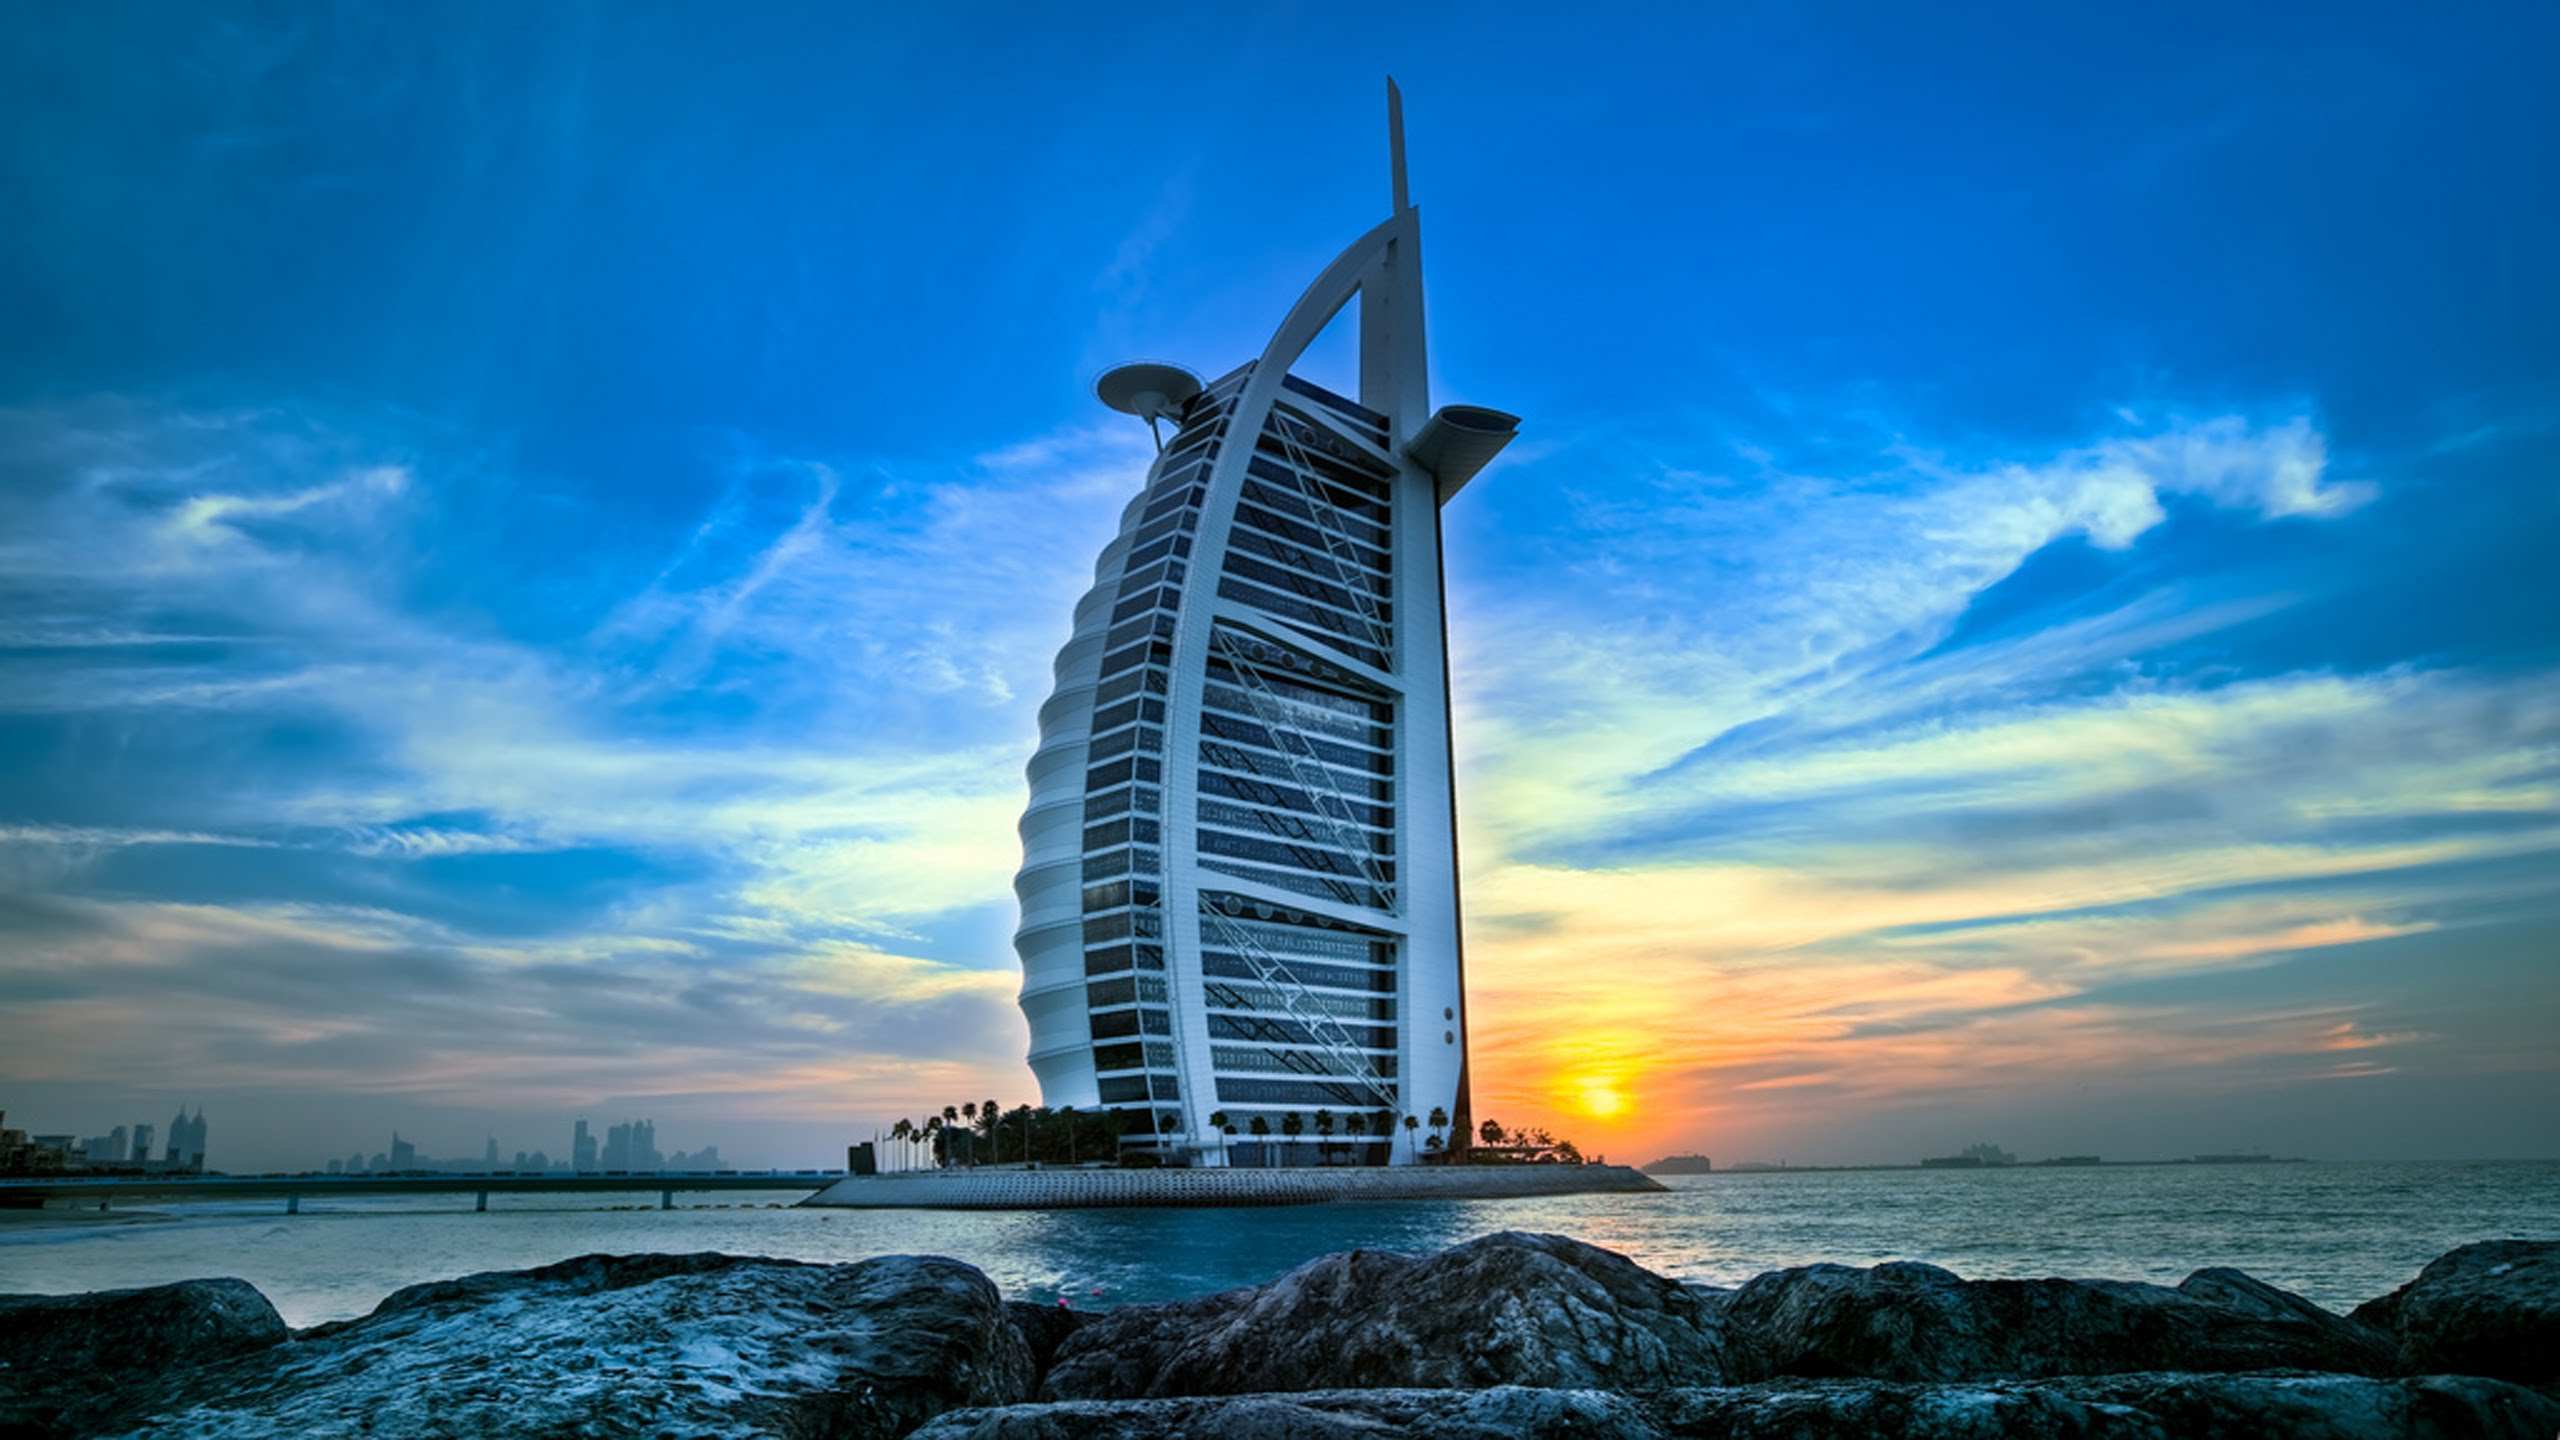 What Are The Very Best Luxury Hotels In Dubai?